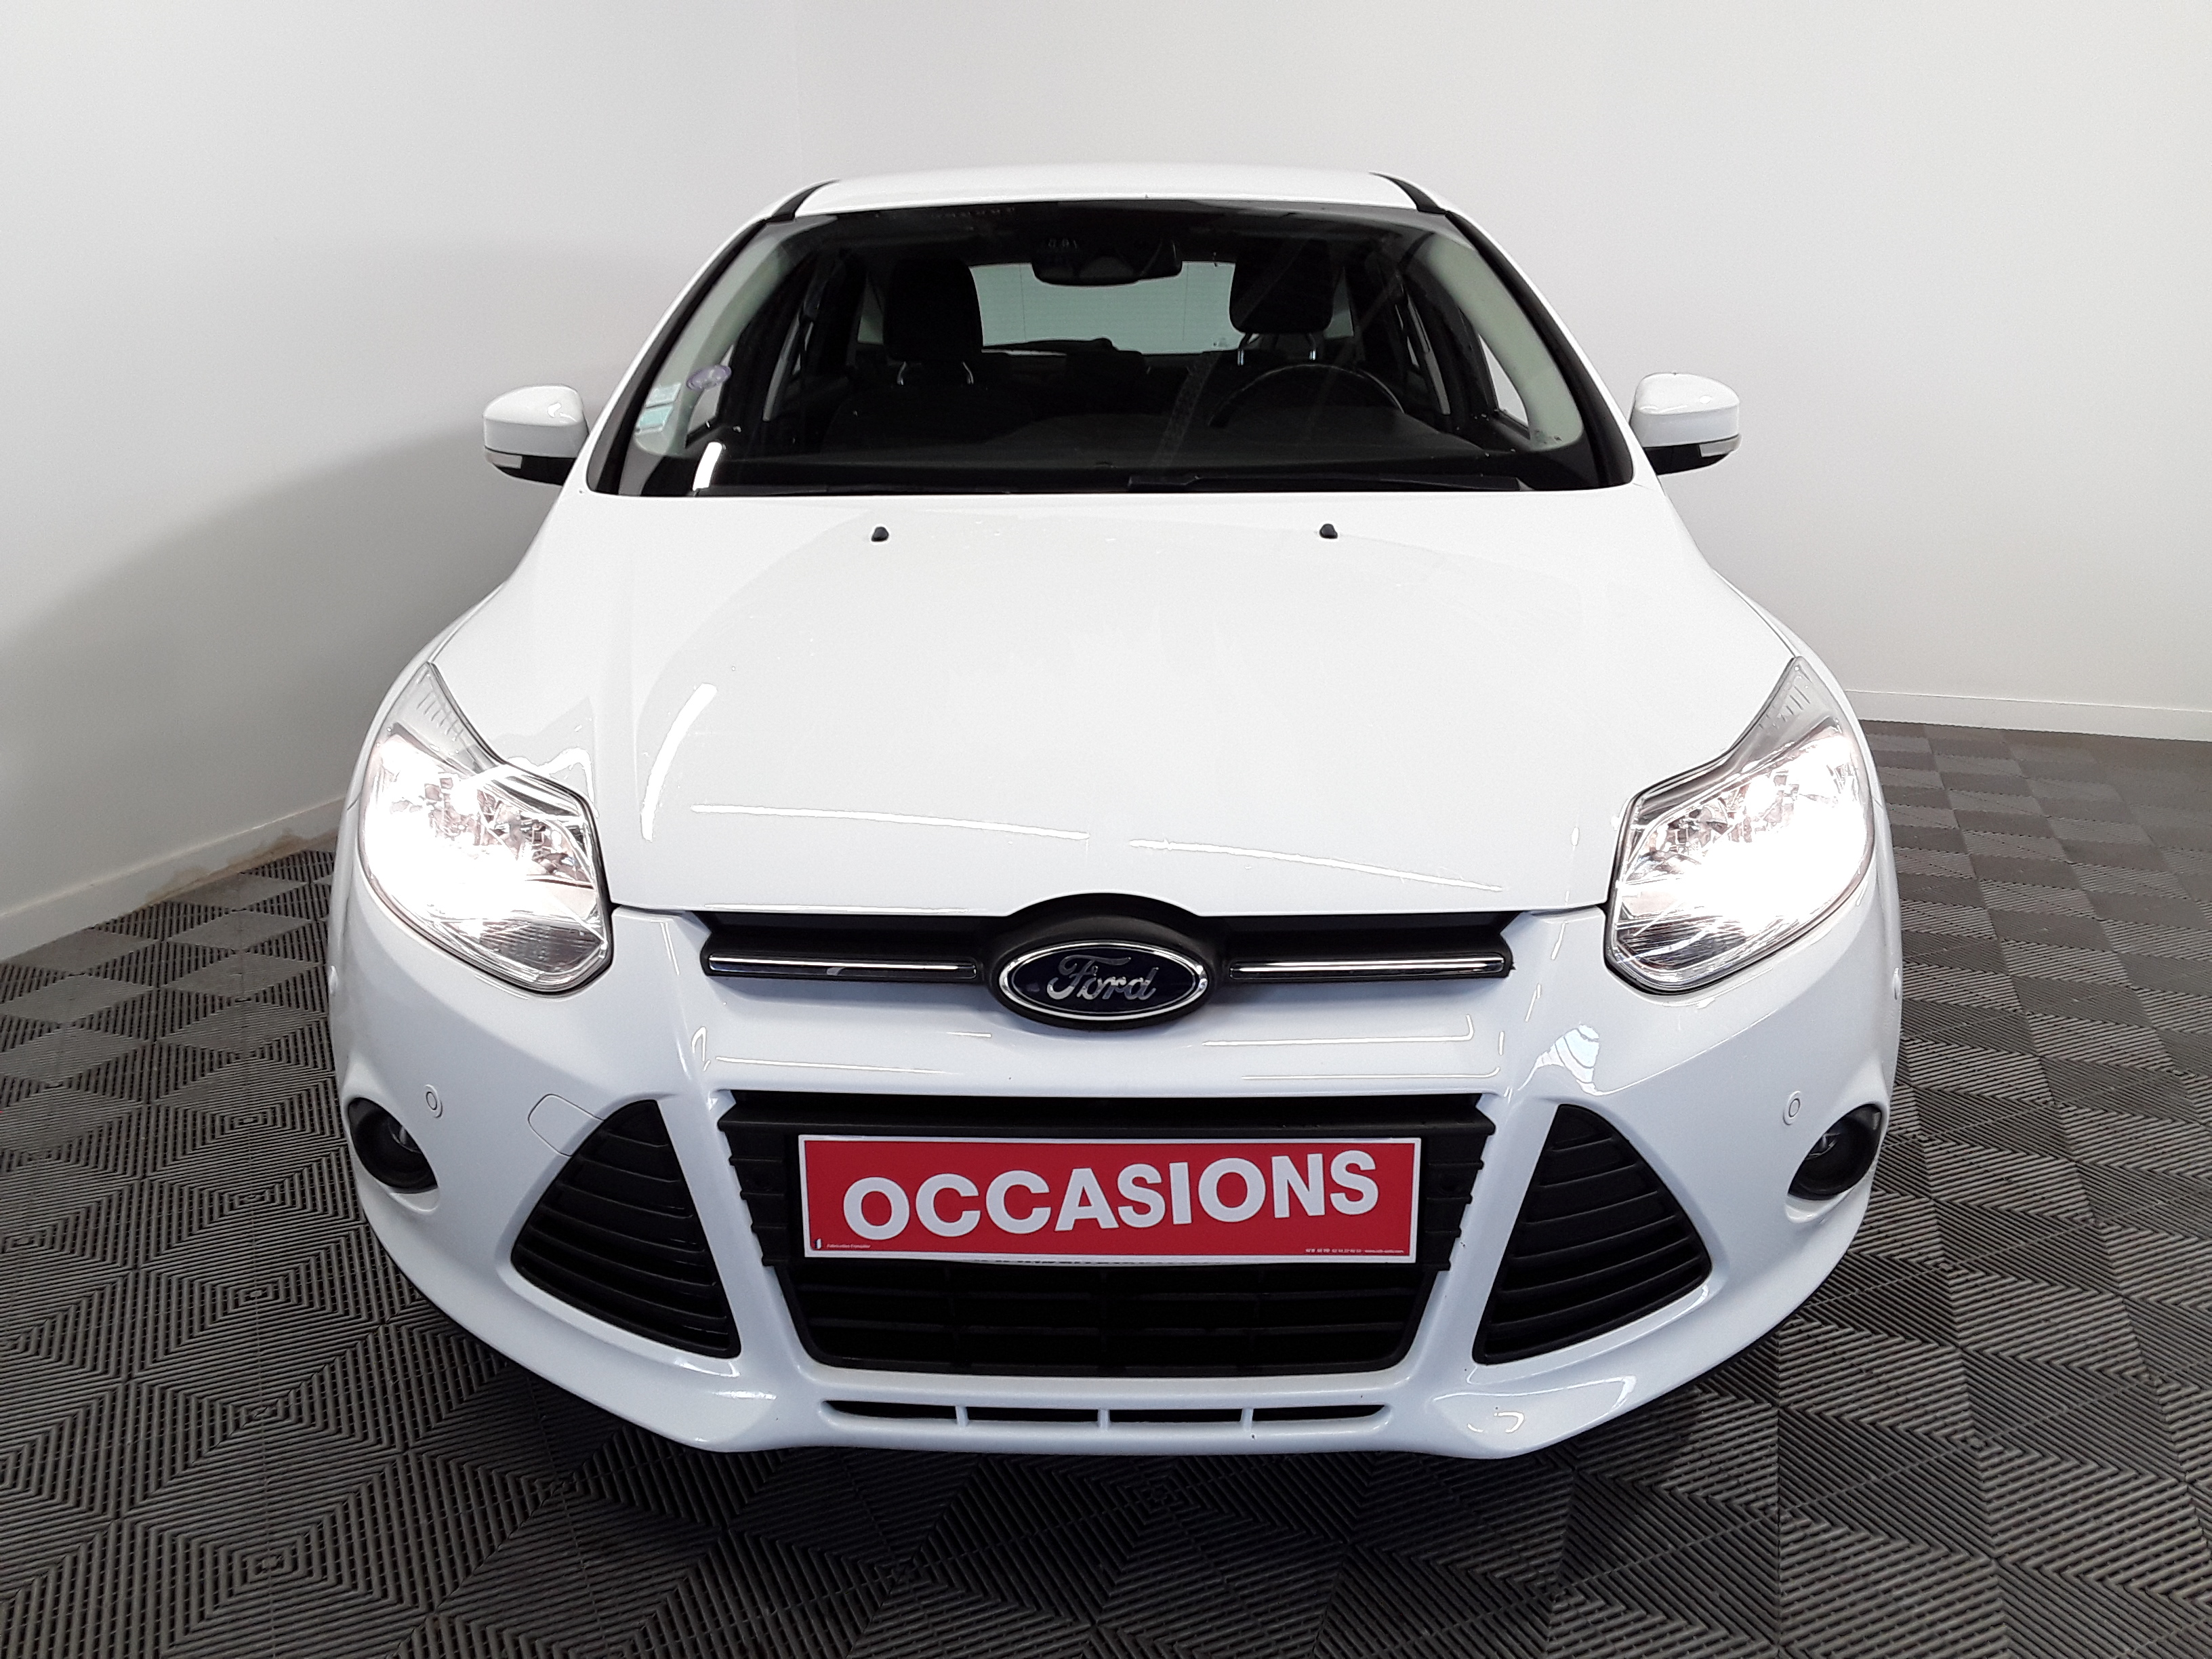 FORD FOCUS 2014 à 7900 € - Photo n°2